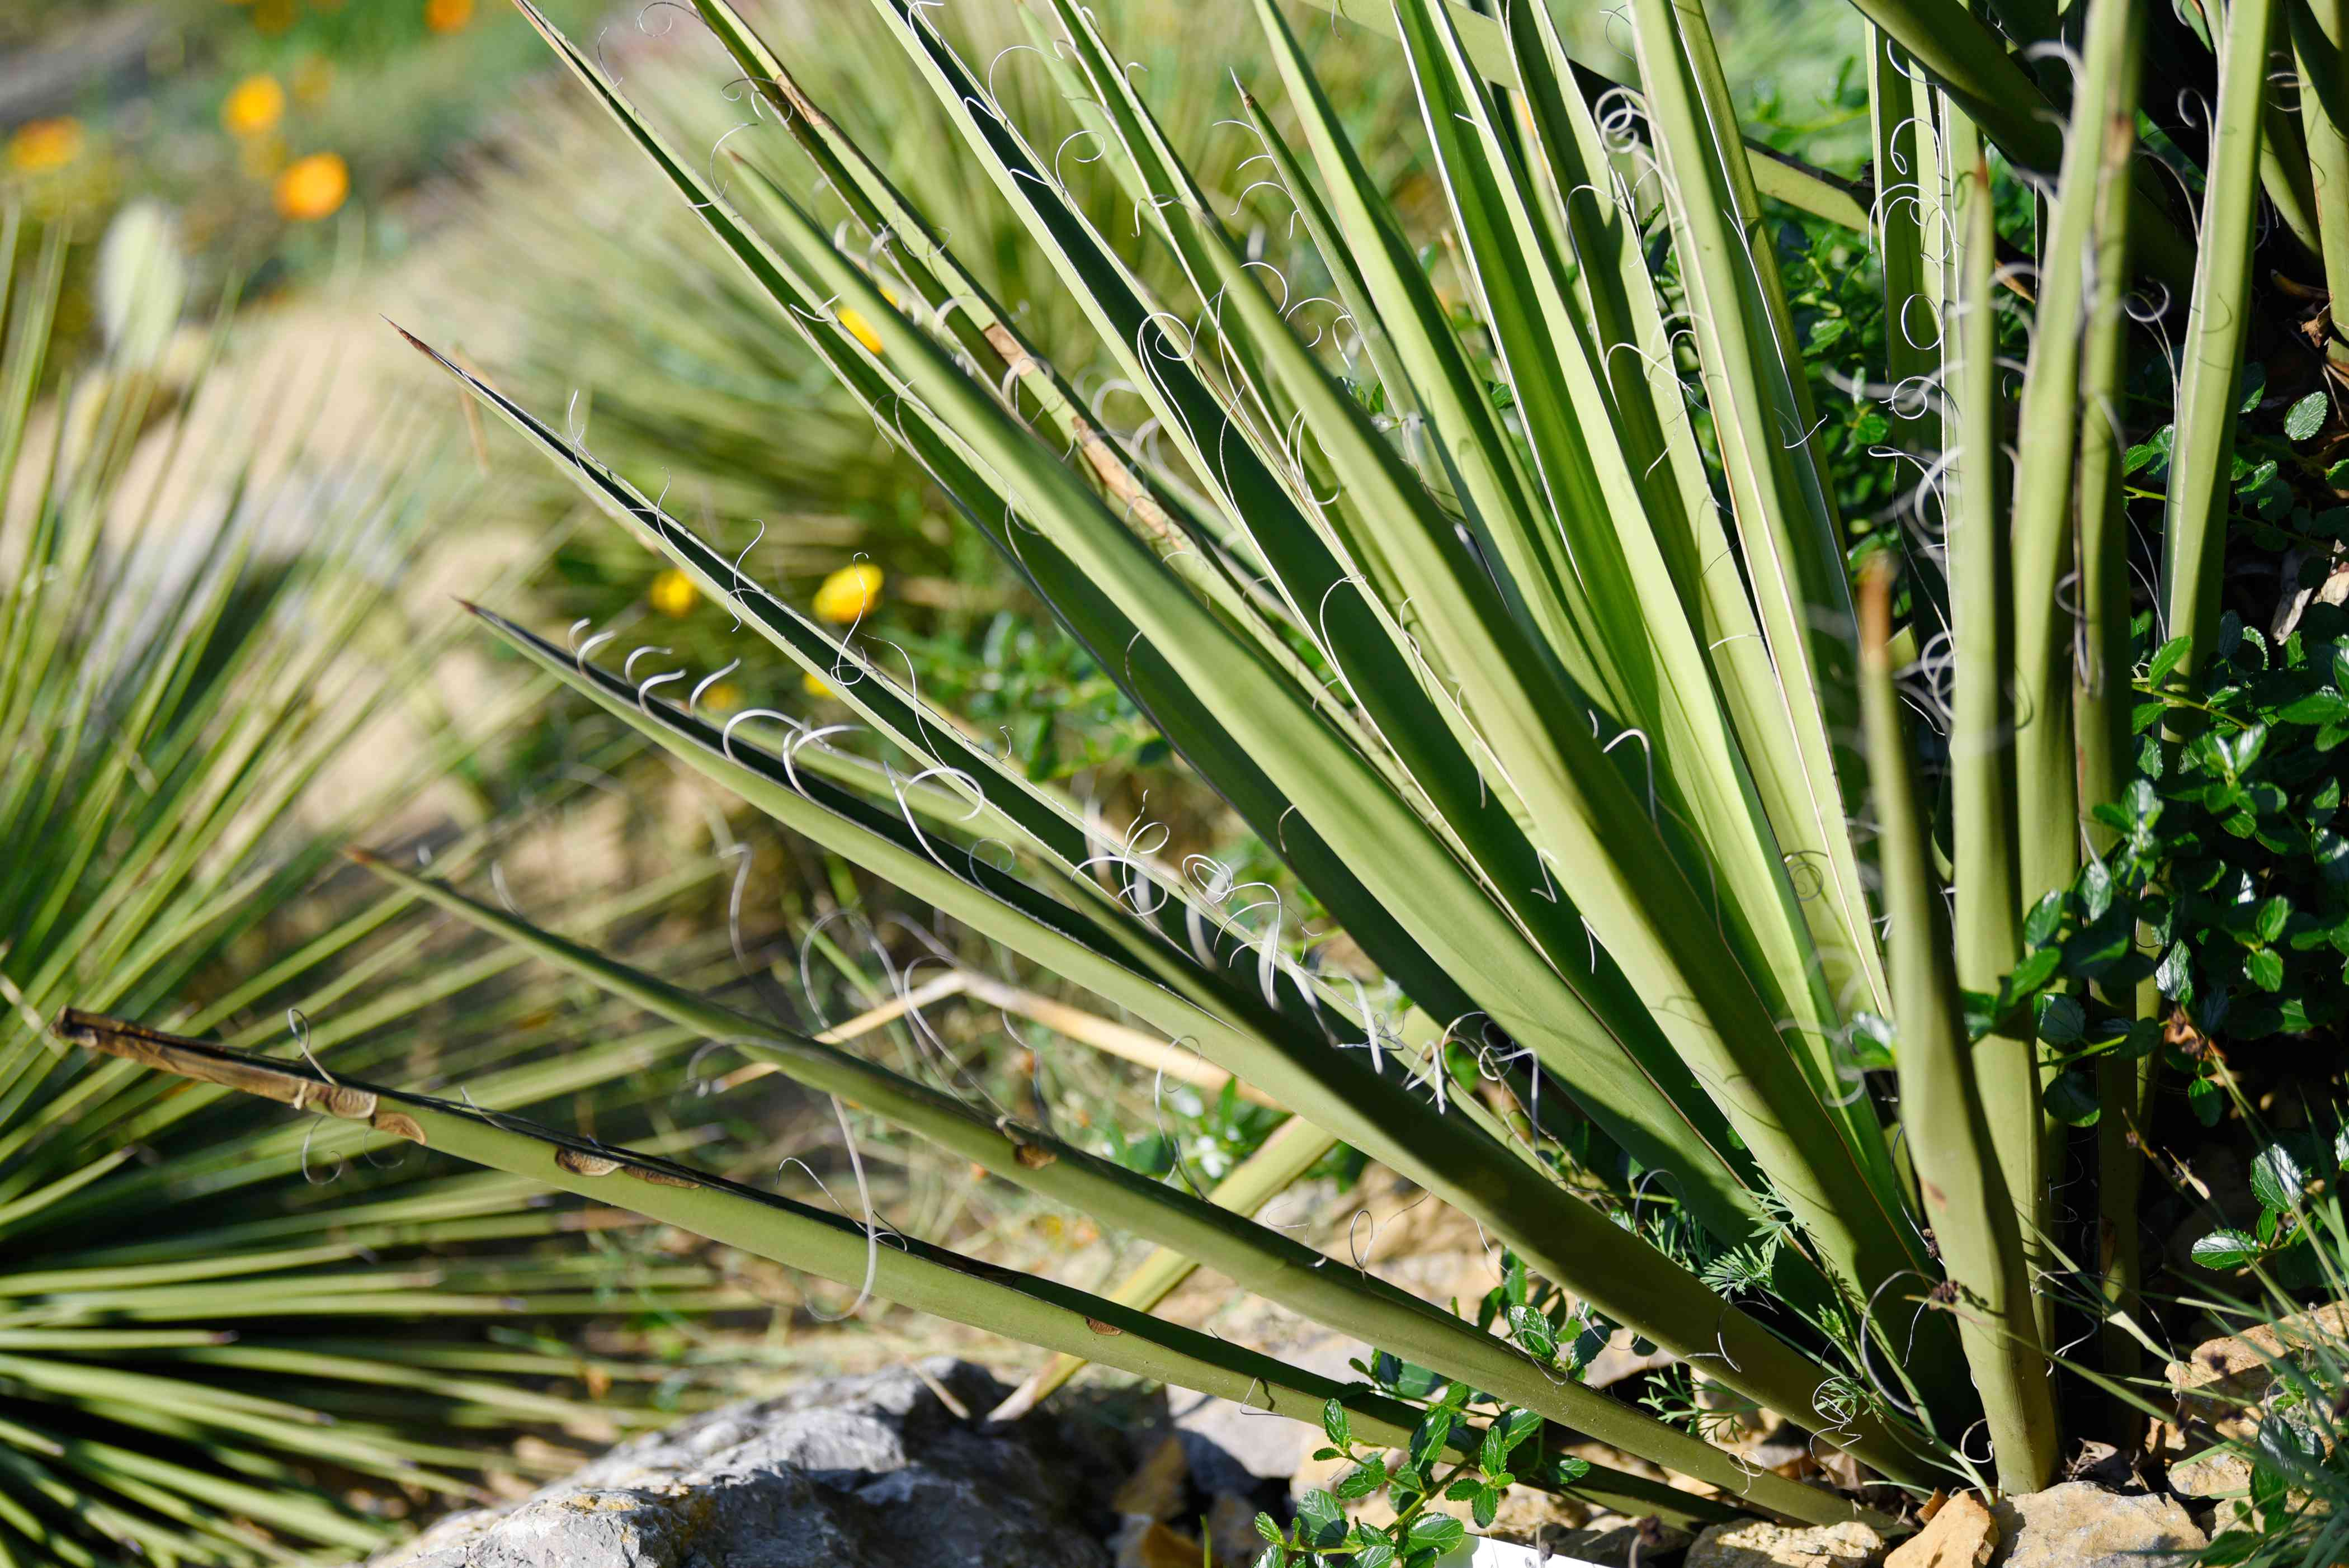 Yucca baccata plant with tall sword-like leaves spreading in fan-shape in sunlight